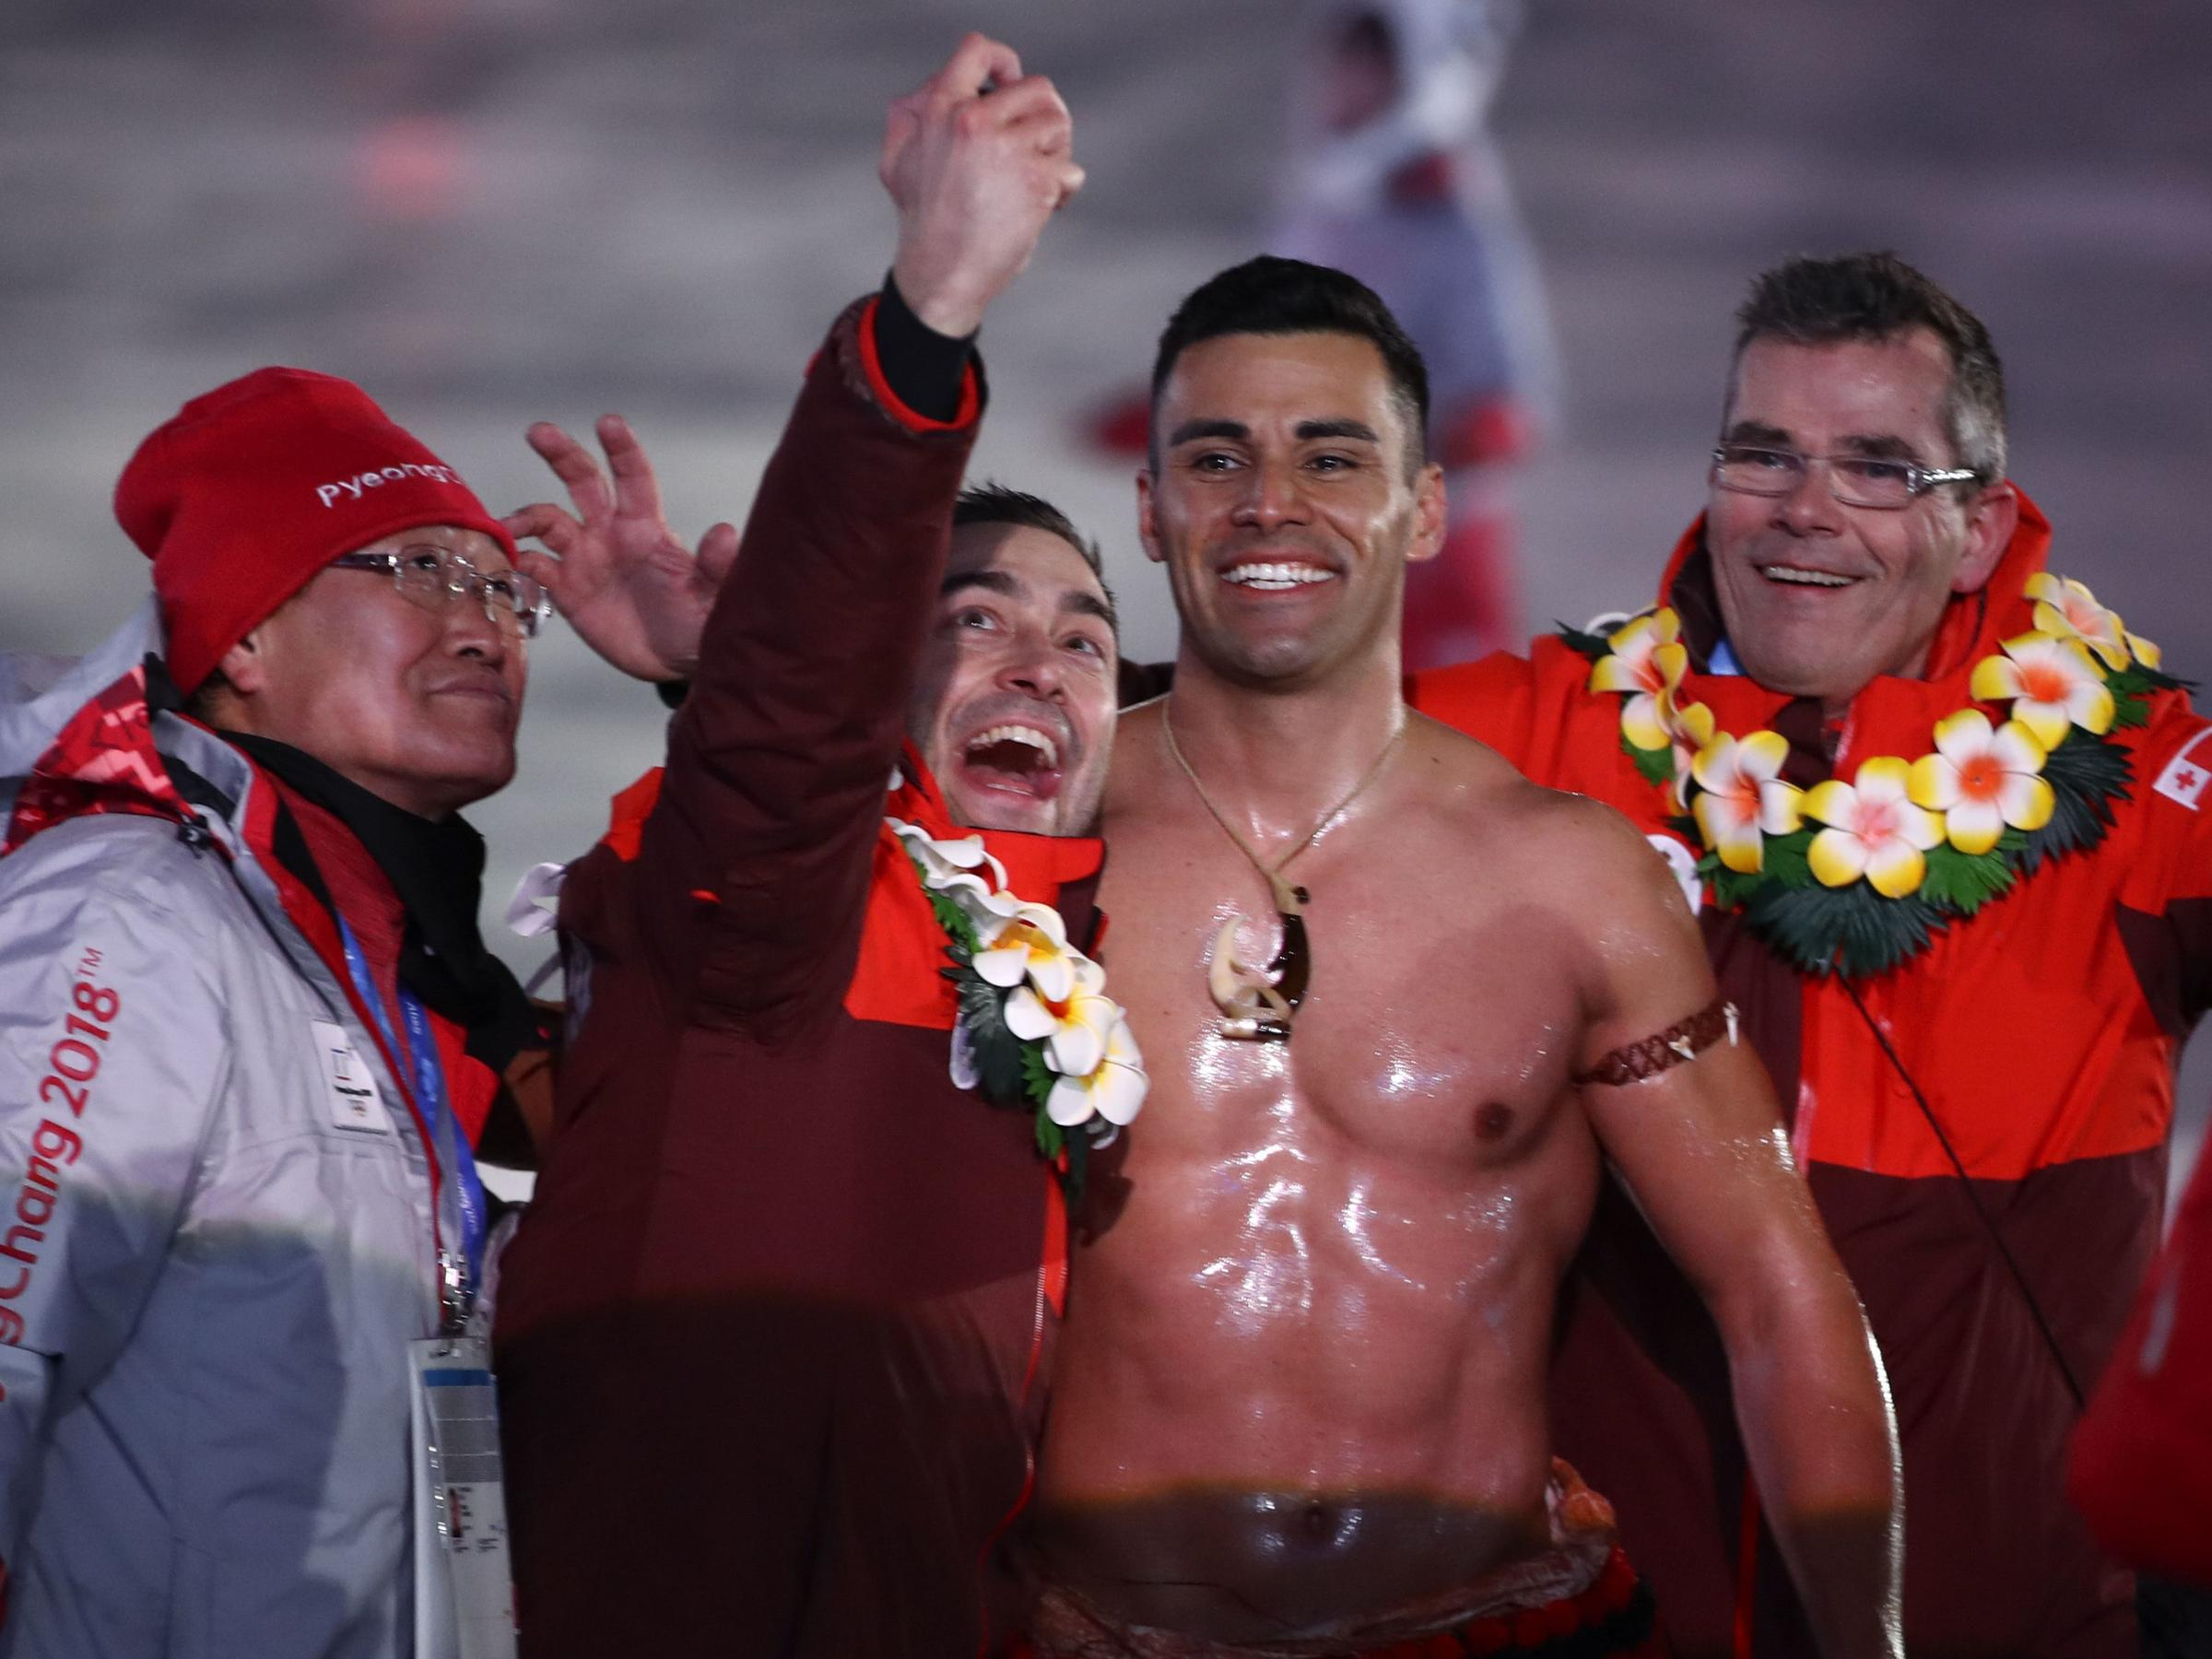 Tonga Winter Olympics 2020.Tongan Skier Finishes Strong In Olympics After Just 12 Weeks